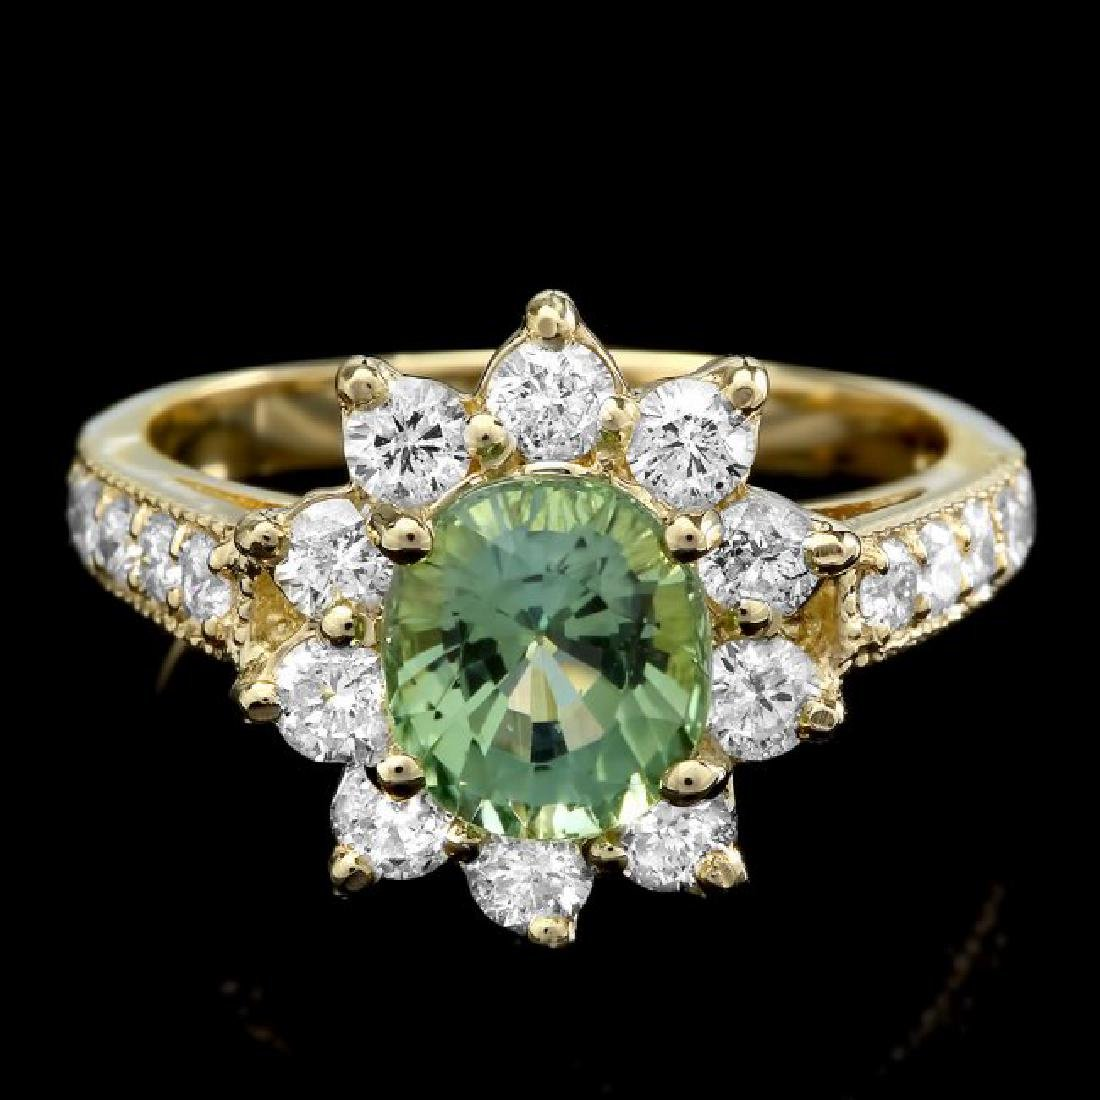 14k Gold 1.74ct Tourmaline 1.10ct Diamond Ring